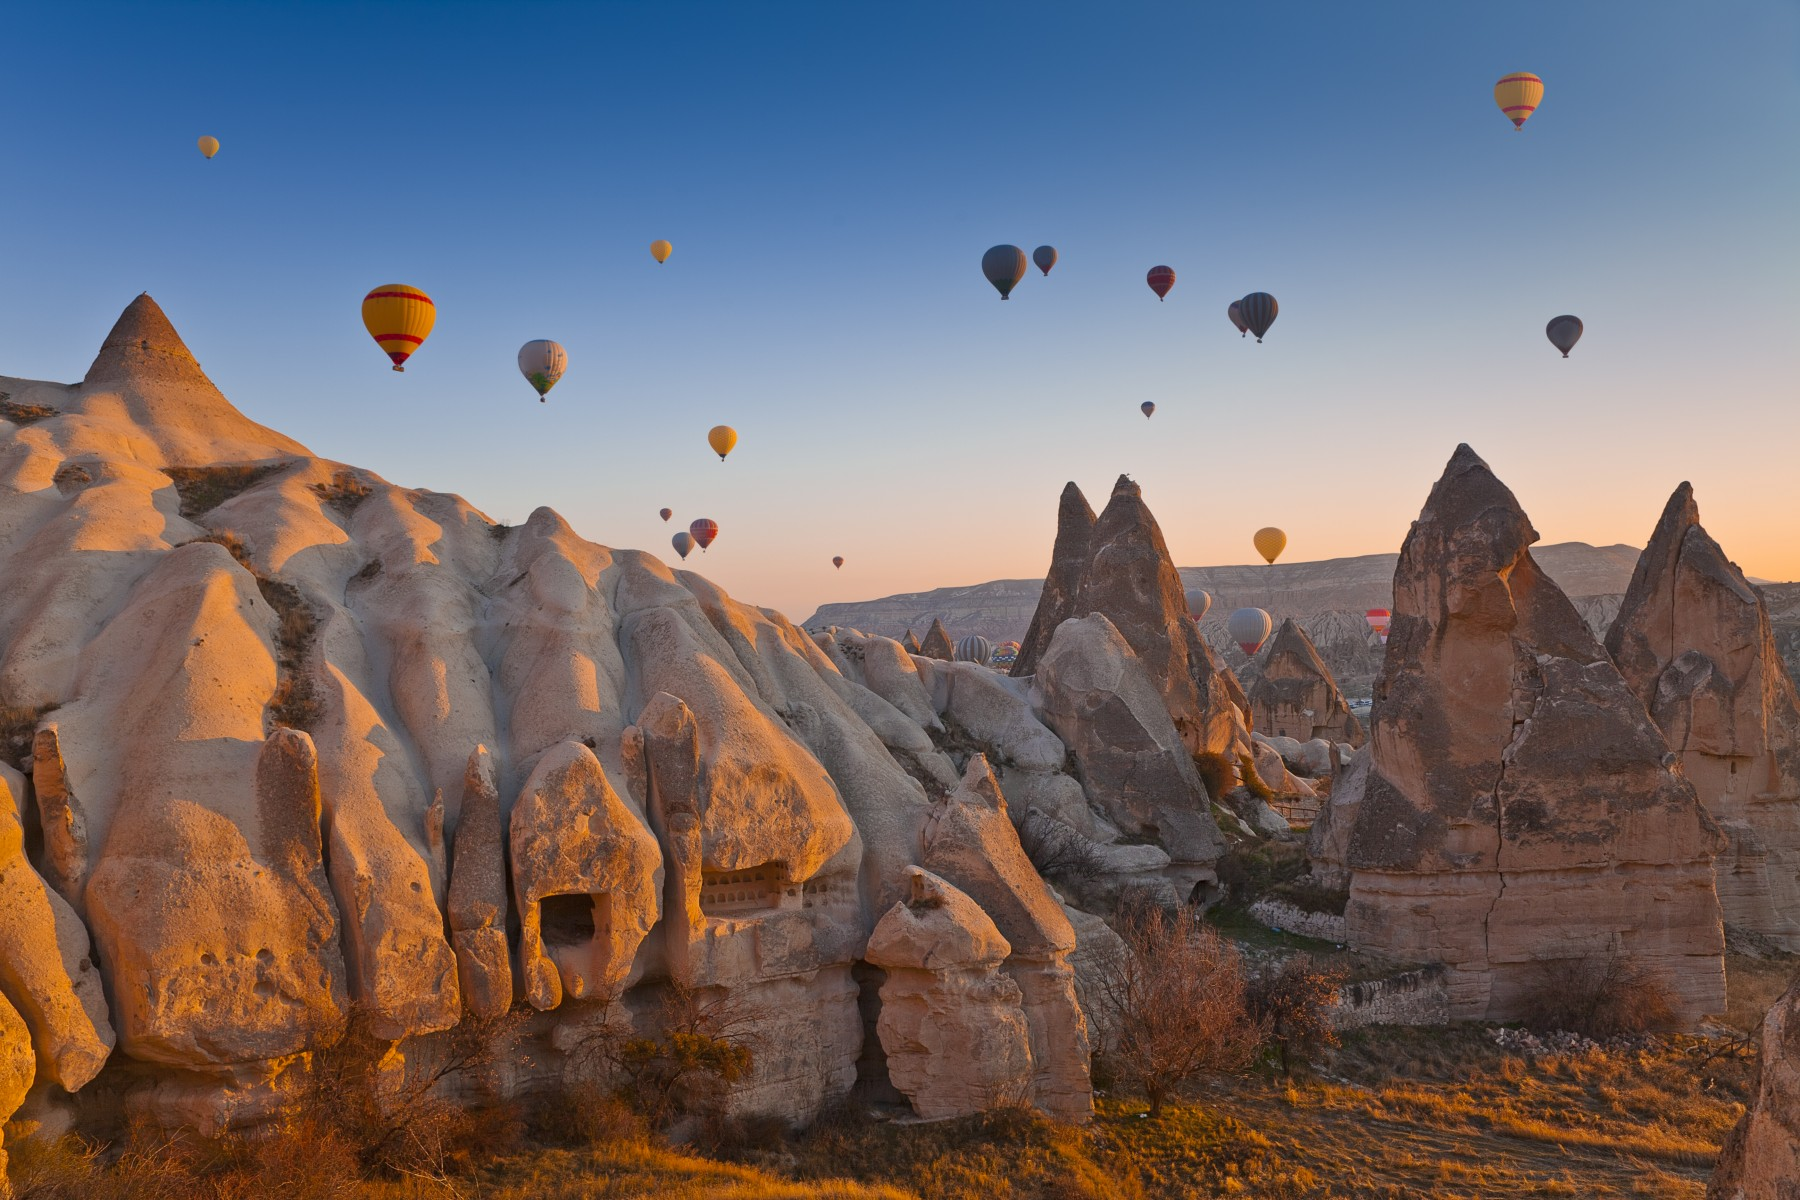 Goreme Valley in Cappadocia, Turkey